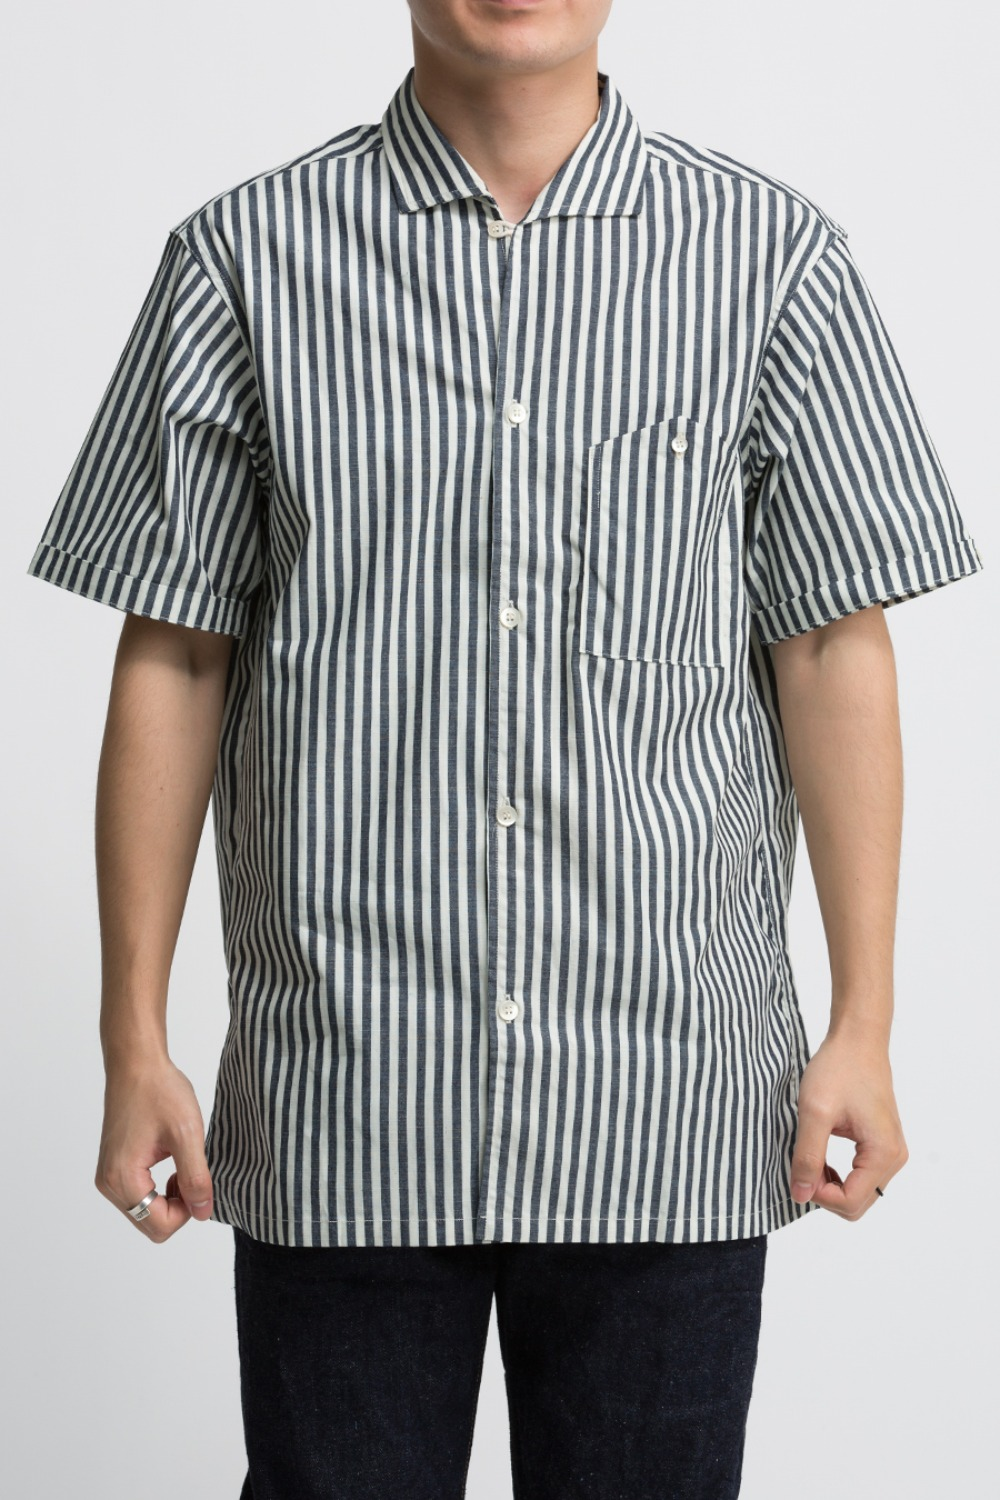 LOT 3091 S/S OPEN COLLAR SHIRTS STRIPE (WIDE)